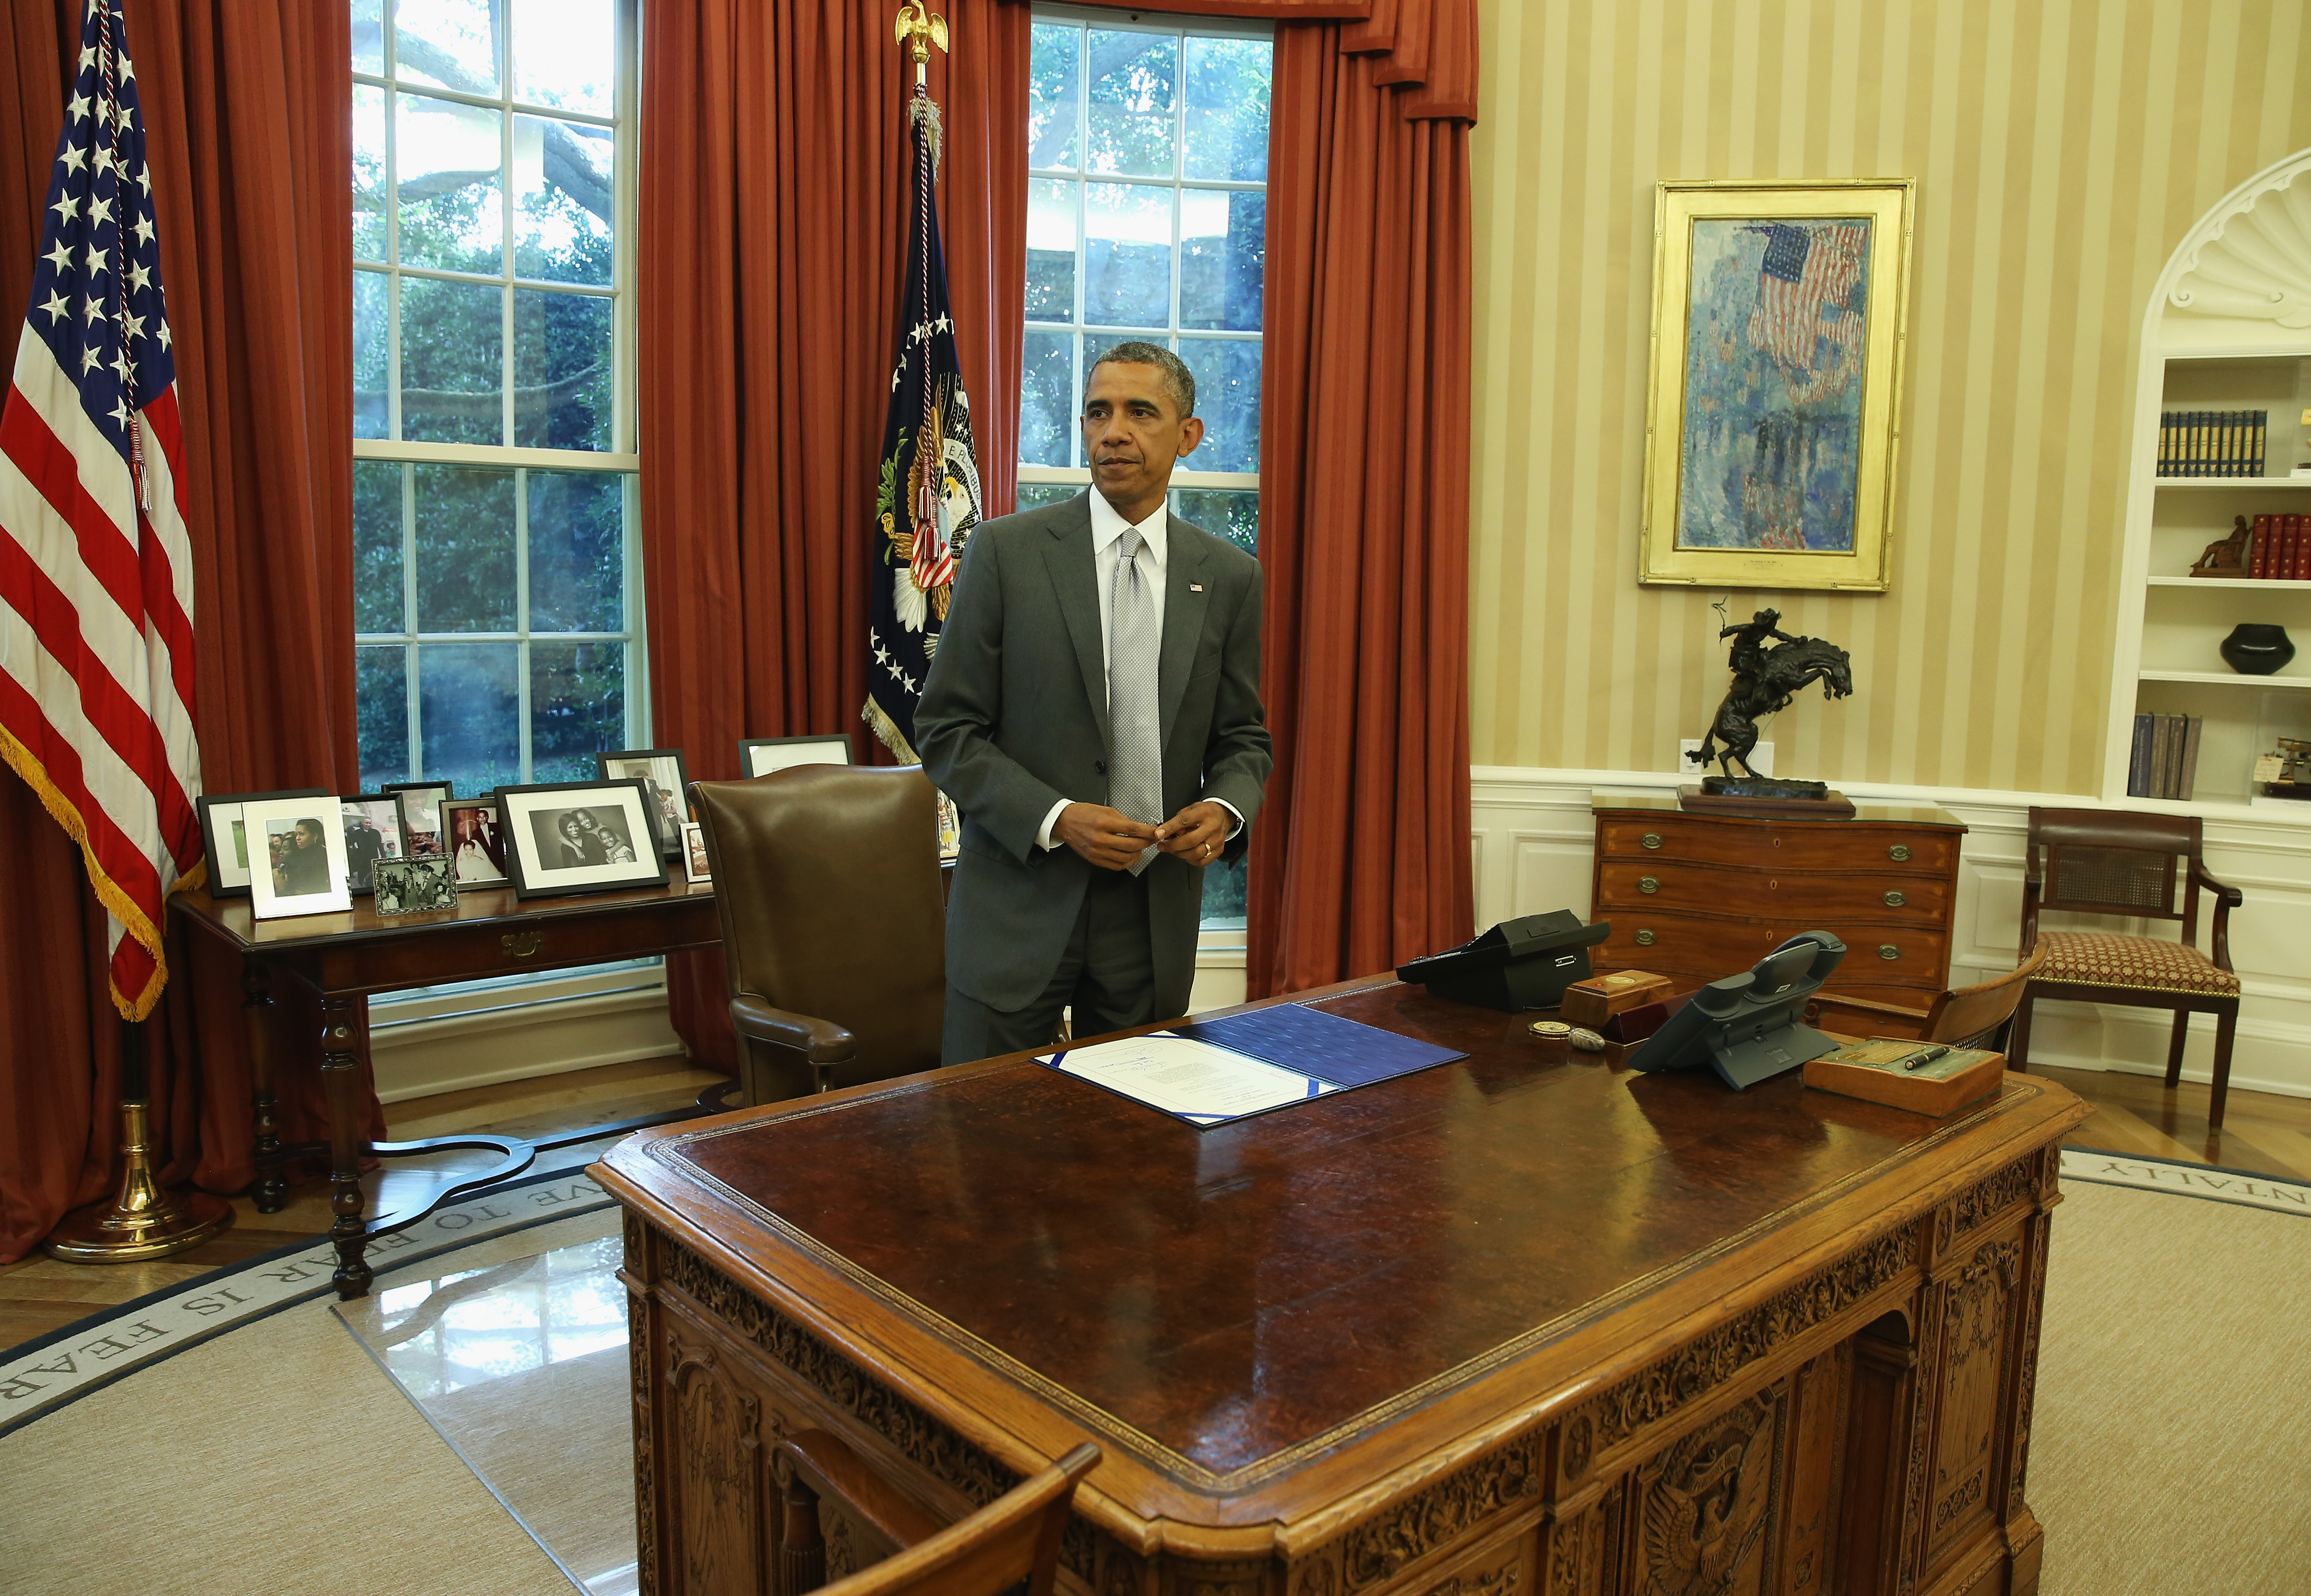 Barak obama oval office golds Reagan Washington Dc August 04 Us President Barack Obama Stands At His Desk After The Mercury News Trump Or Obama Who Decorated The Oval Office Better